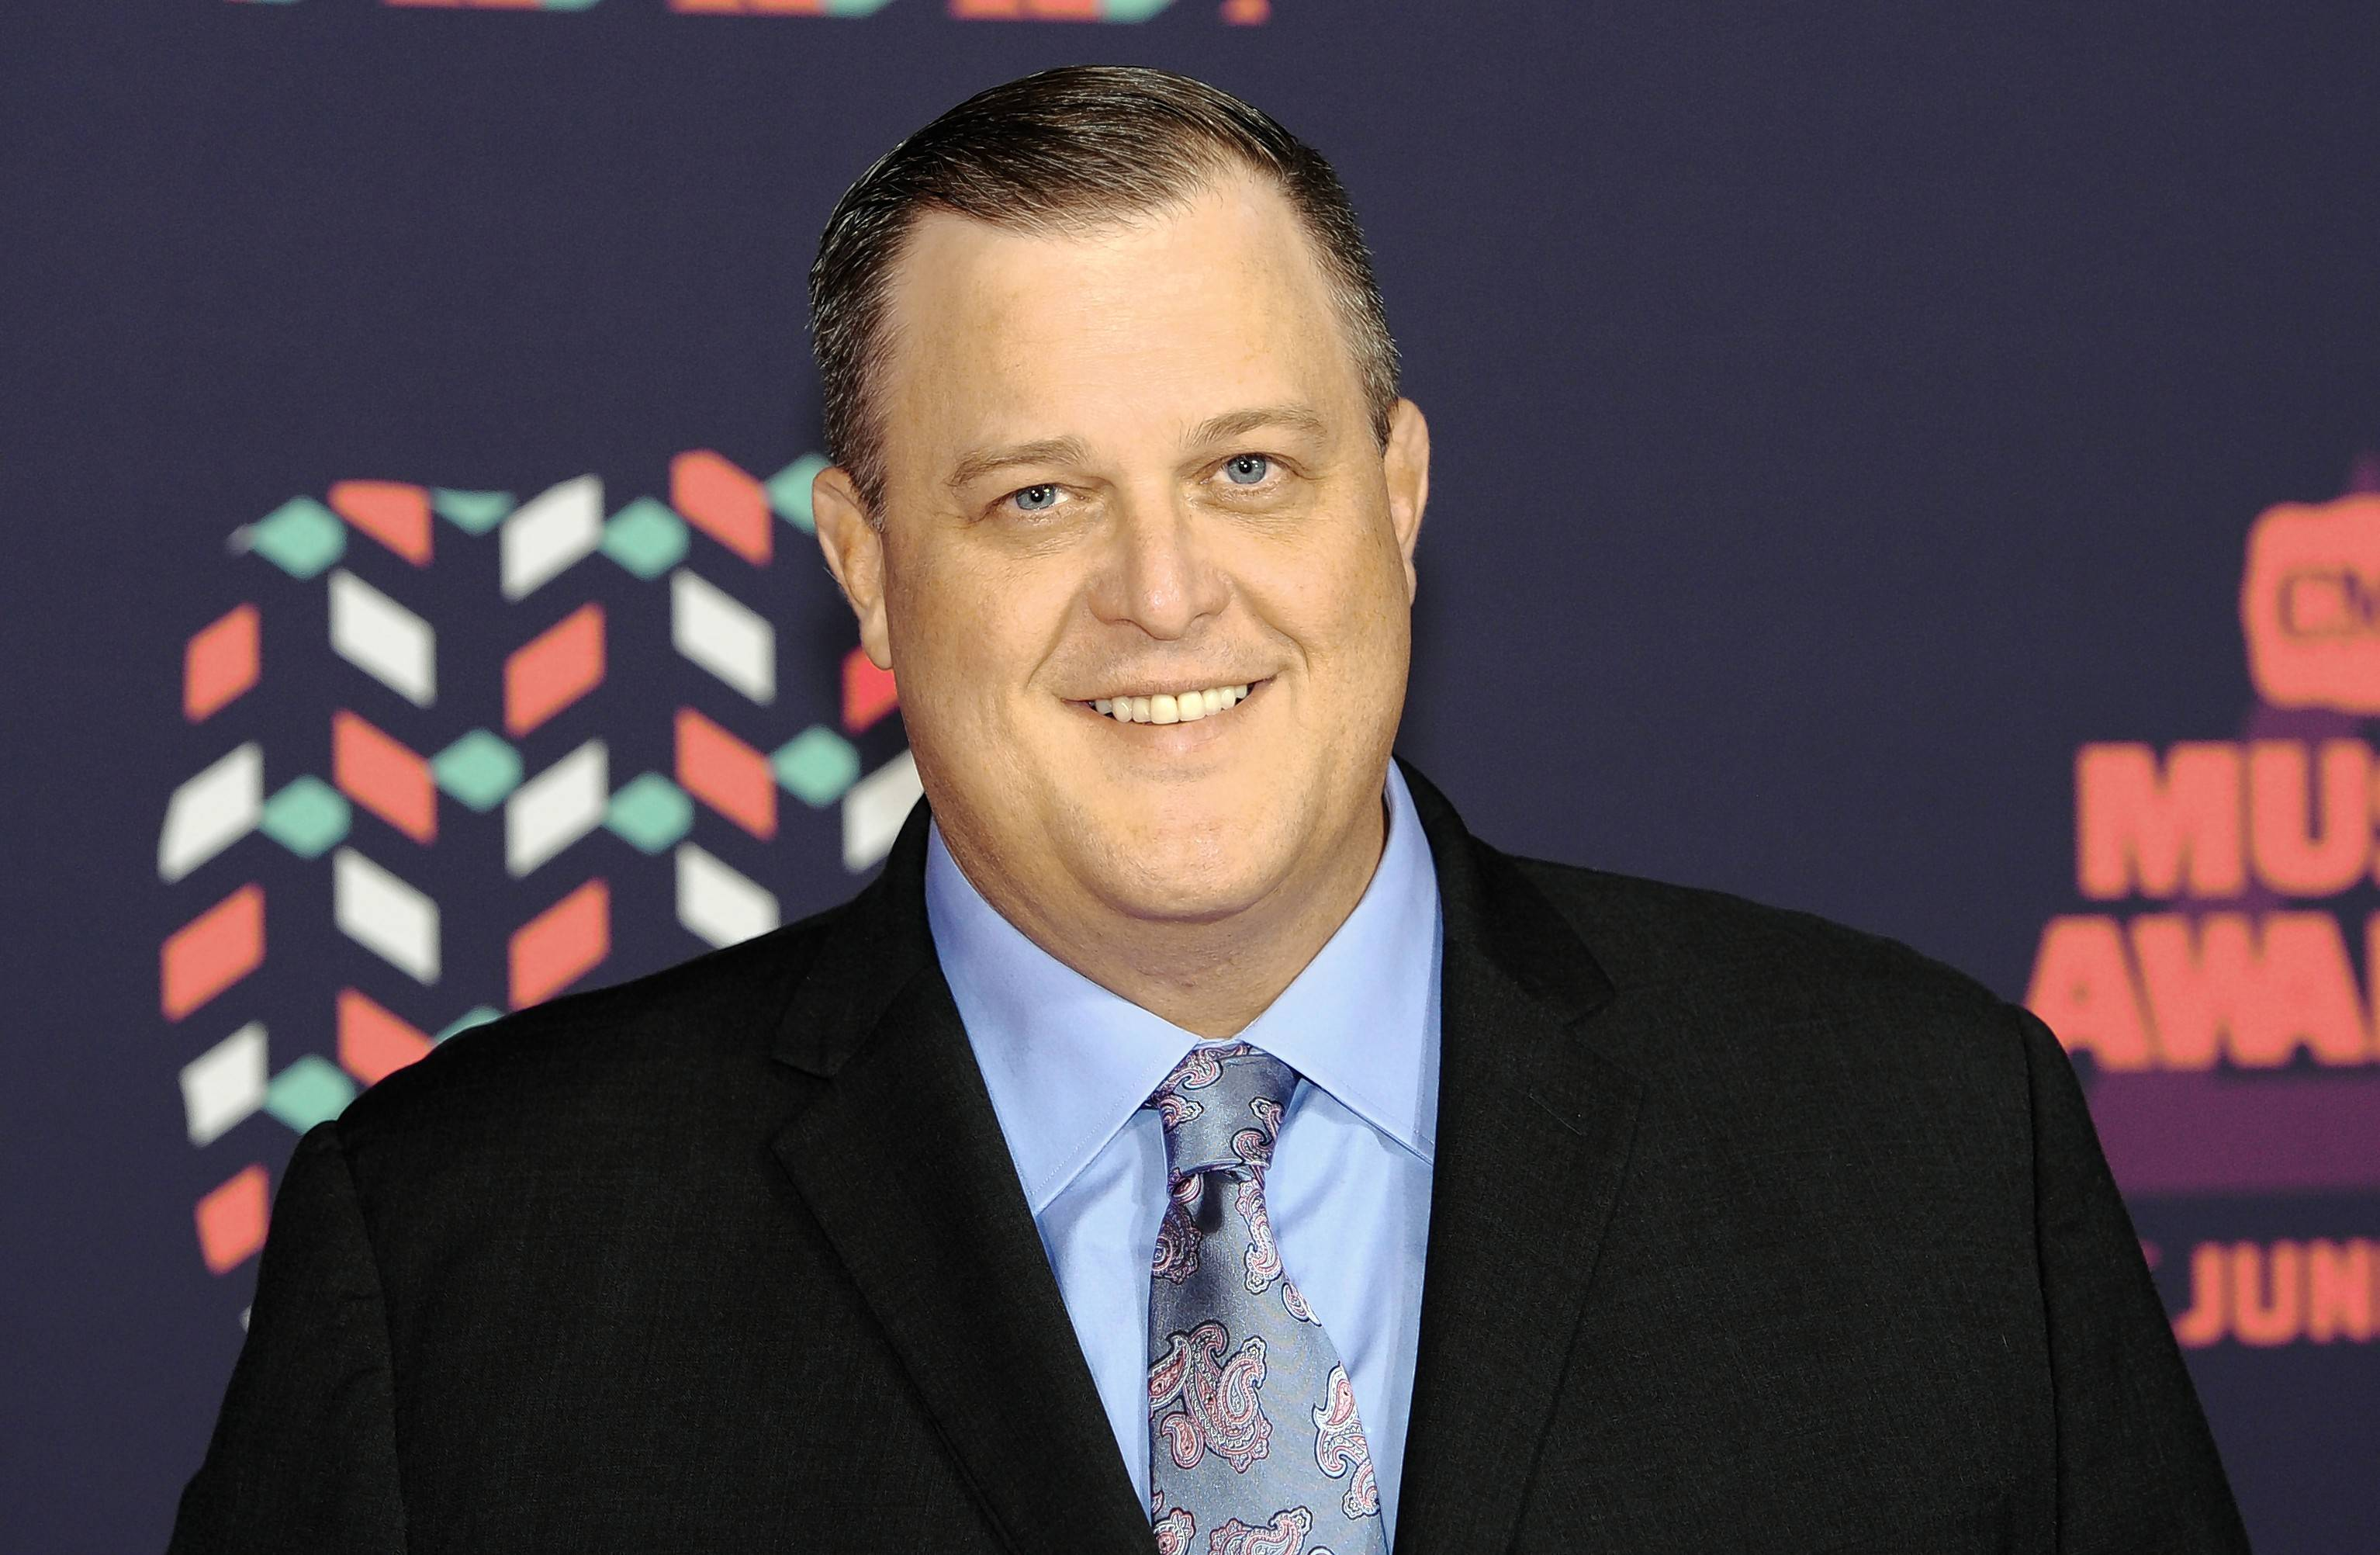 Billy Gardell performs at the Genesee Theatre in Waukegan on Saturday, Jan. 12.